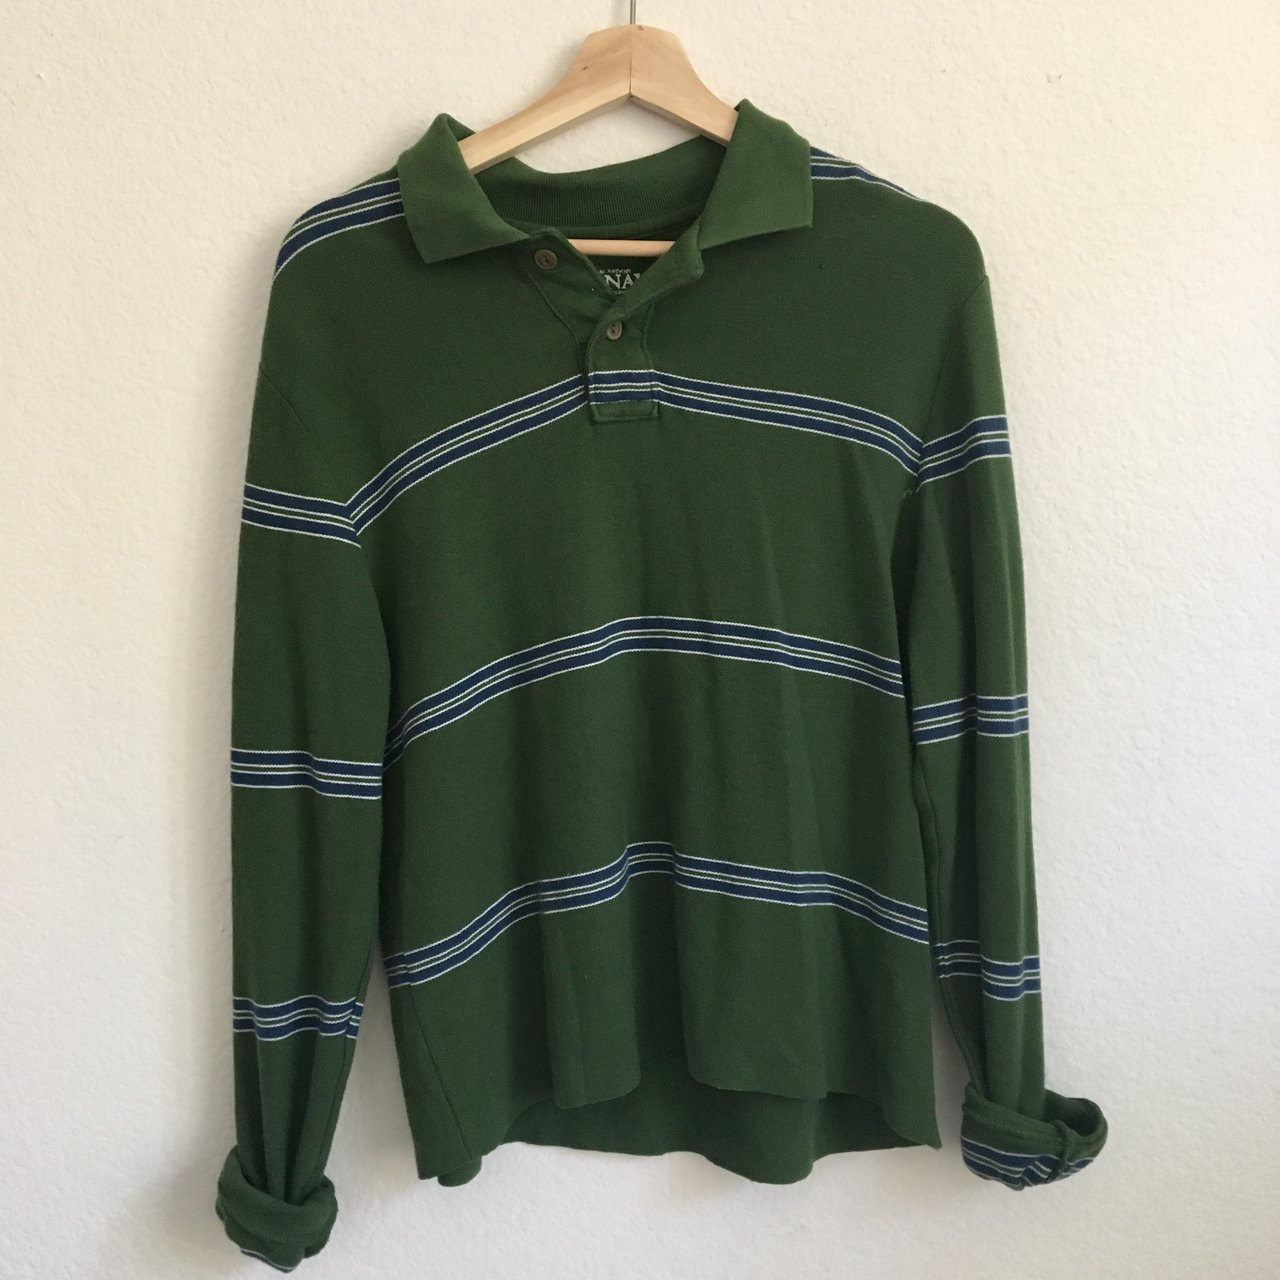 Green Polo Top Long Sleeve Collared Shirt With Blue And A Depop